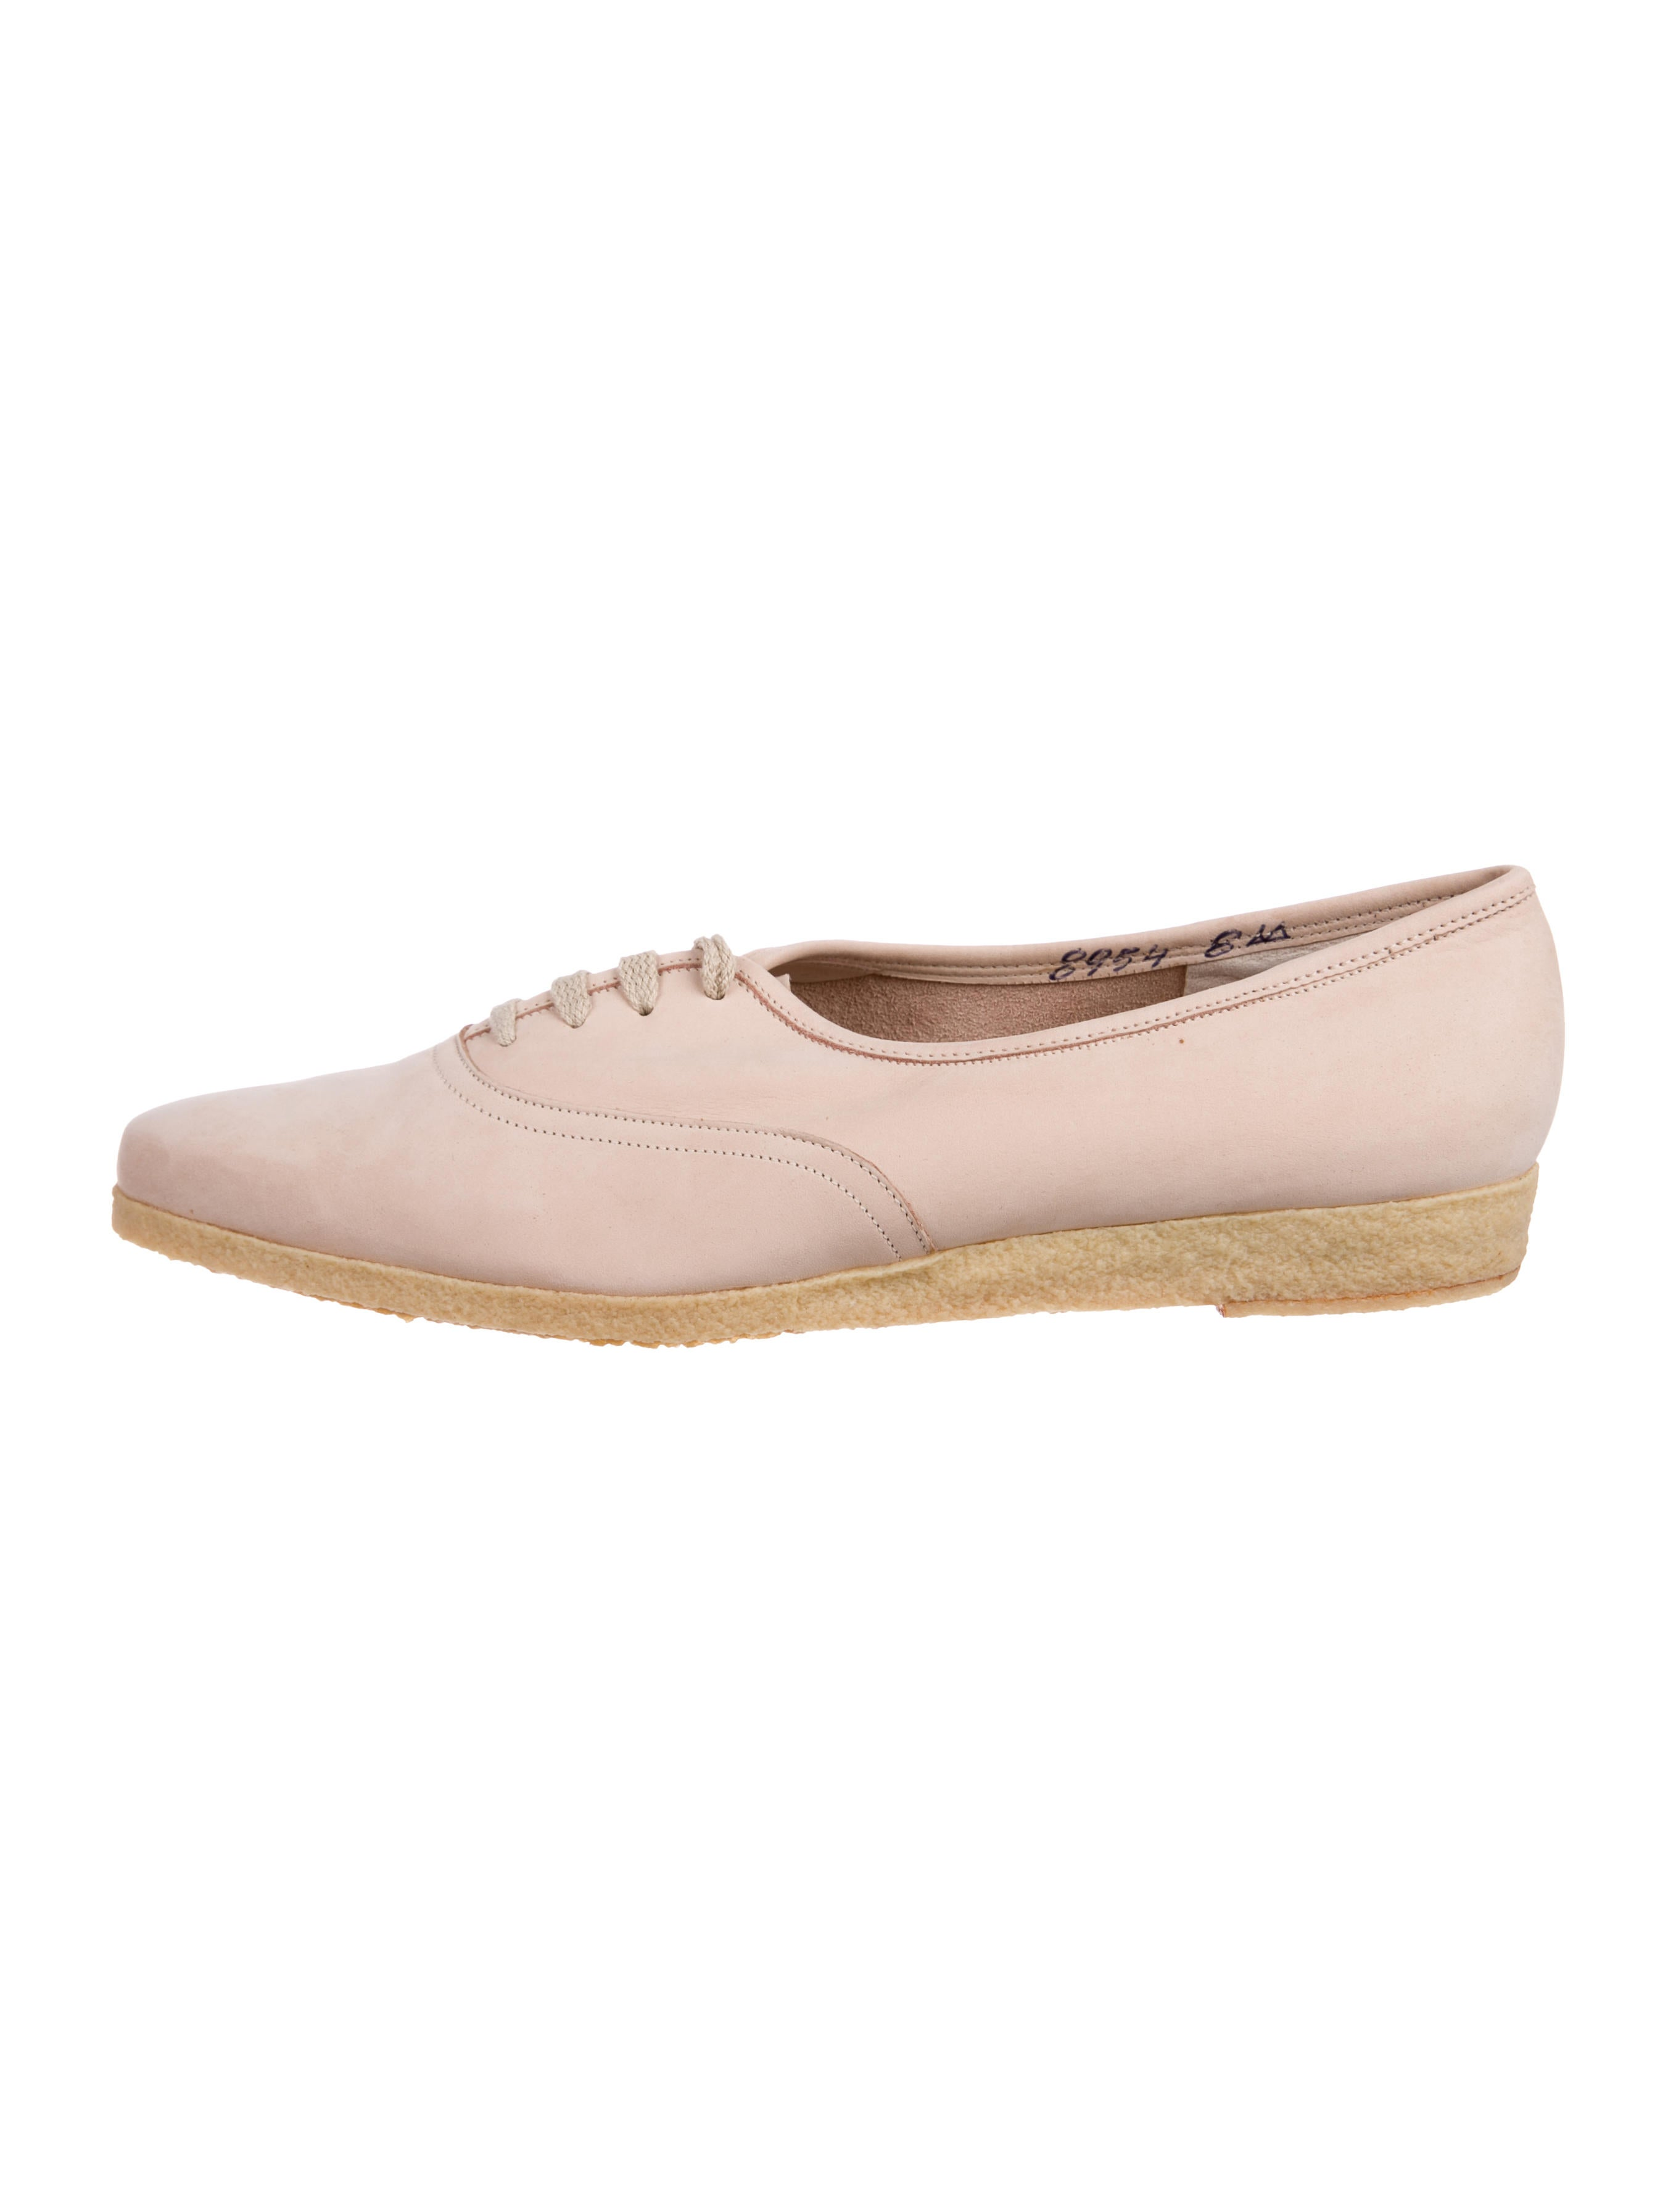 cheap sale recommend looking for sale online Salvatore Ferragamo Vintage Cervy Nubuck Sneakers cheap newest f8wW1v